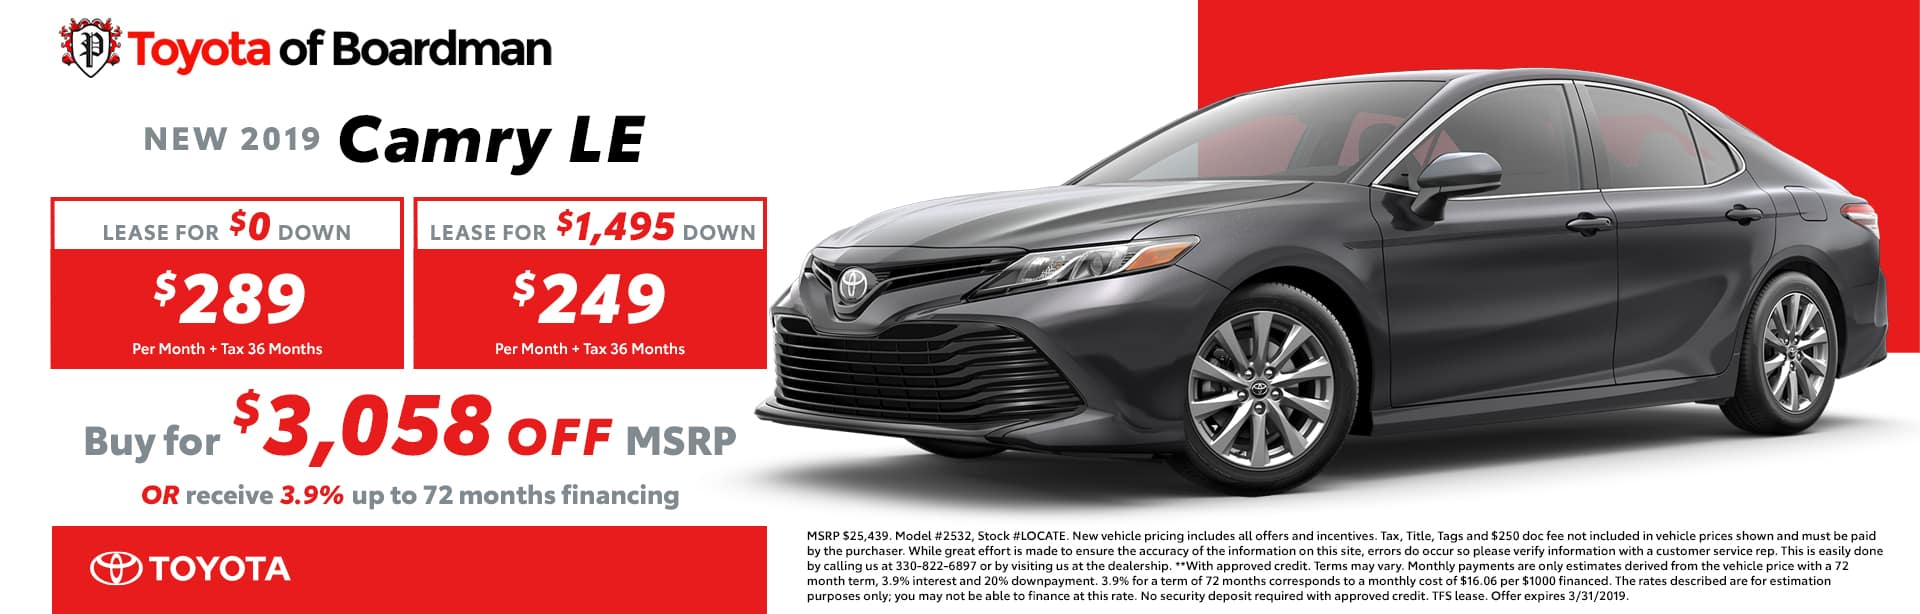 March Special on the 2019 Toyota Camry LE